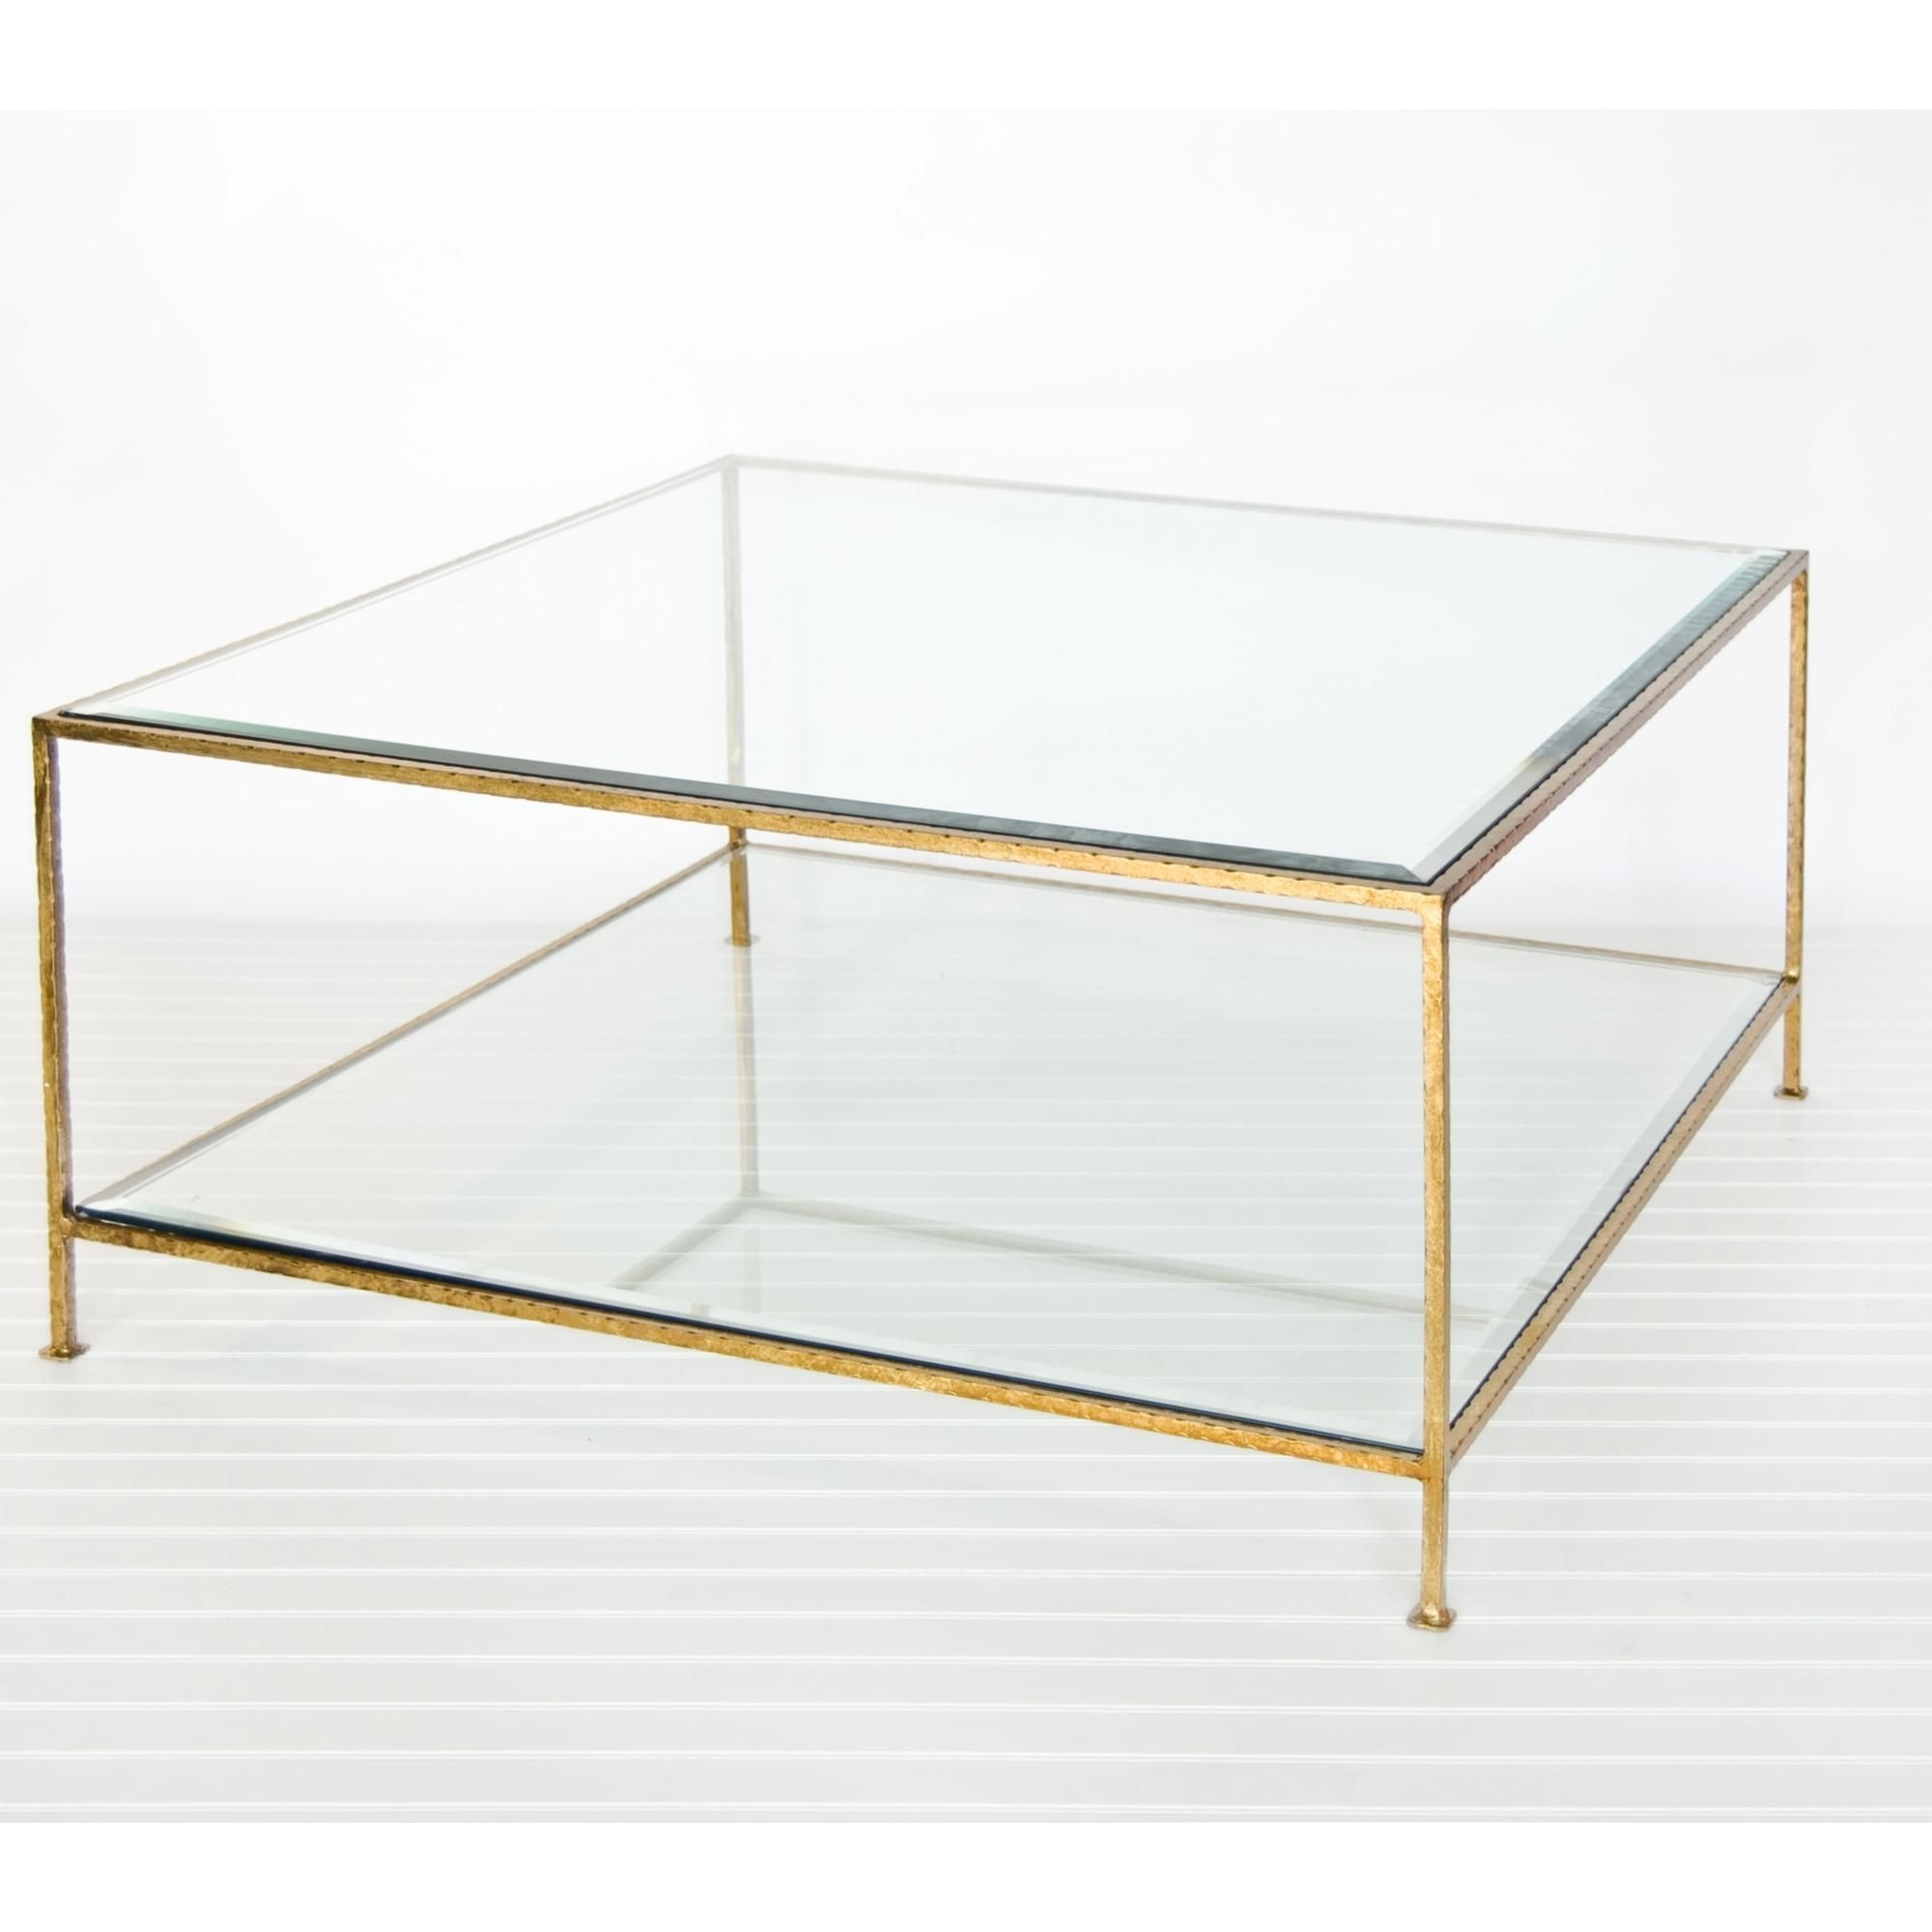 Worlds Away Quadro Coffee Table – Hammered Gold Leaf In (View 3 of 20)